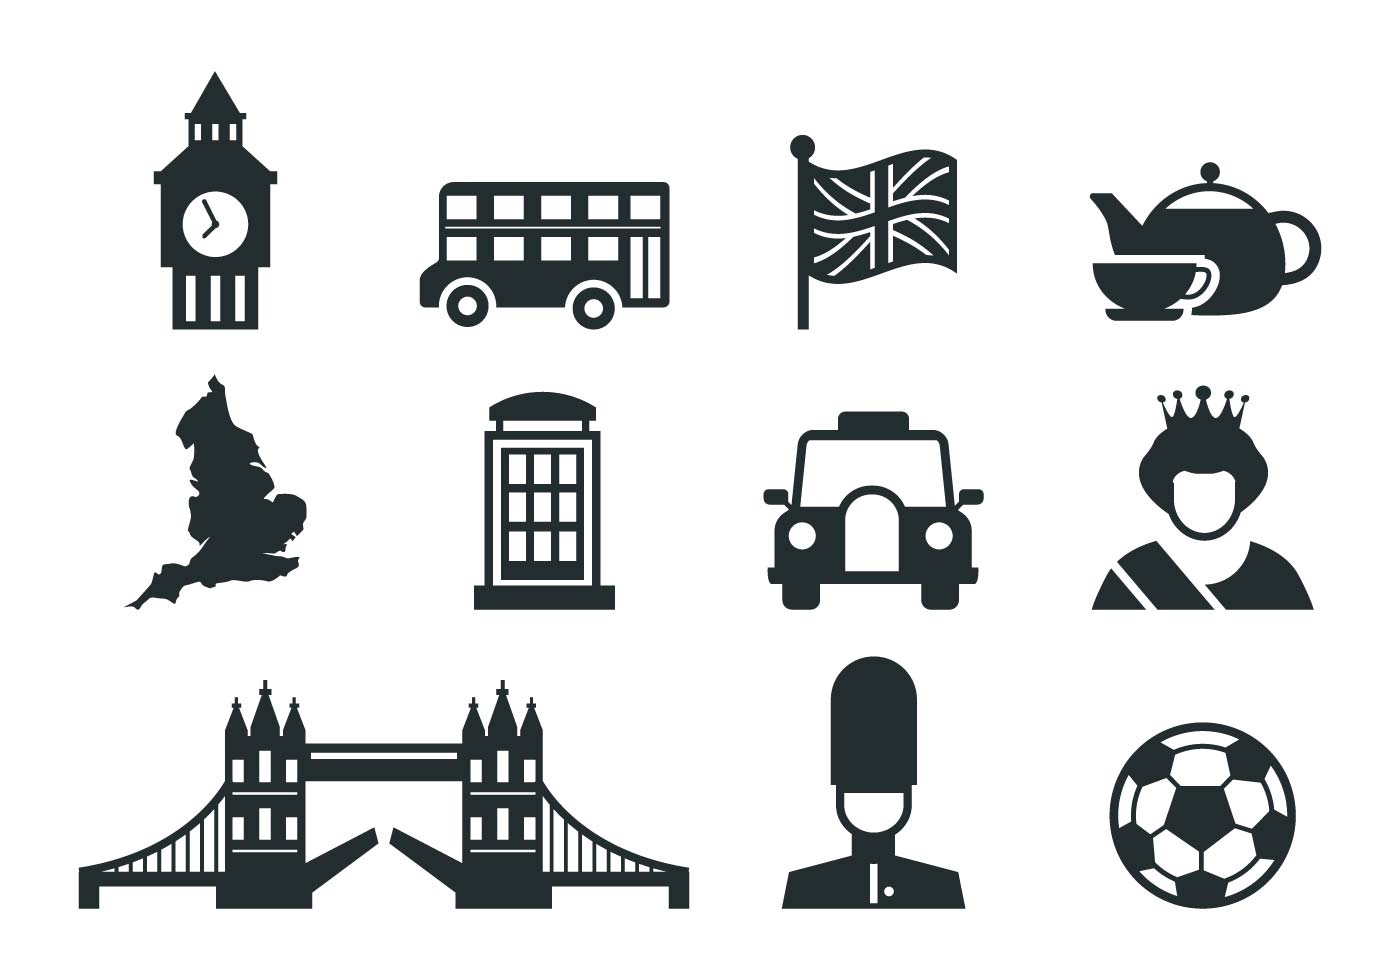 116275 Free England Icons Vector likewise Diary Of A Wimpy Kid 9 The Long Haul additionally Occupational Safety And Health Worker Accident Hazard Pictogram Gm491336480 75615989 moreover Room for improvement likewise View Image. on car trip illustration